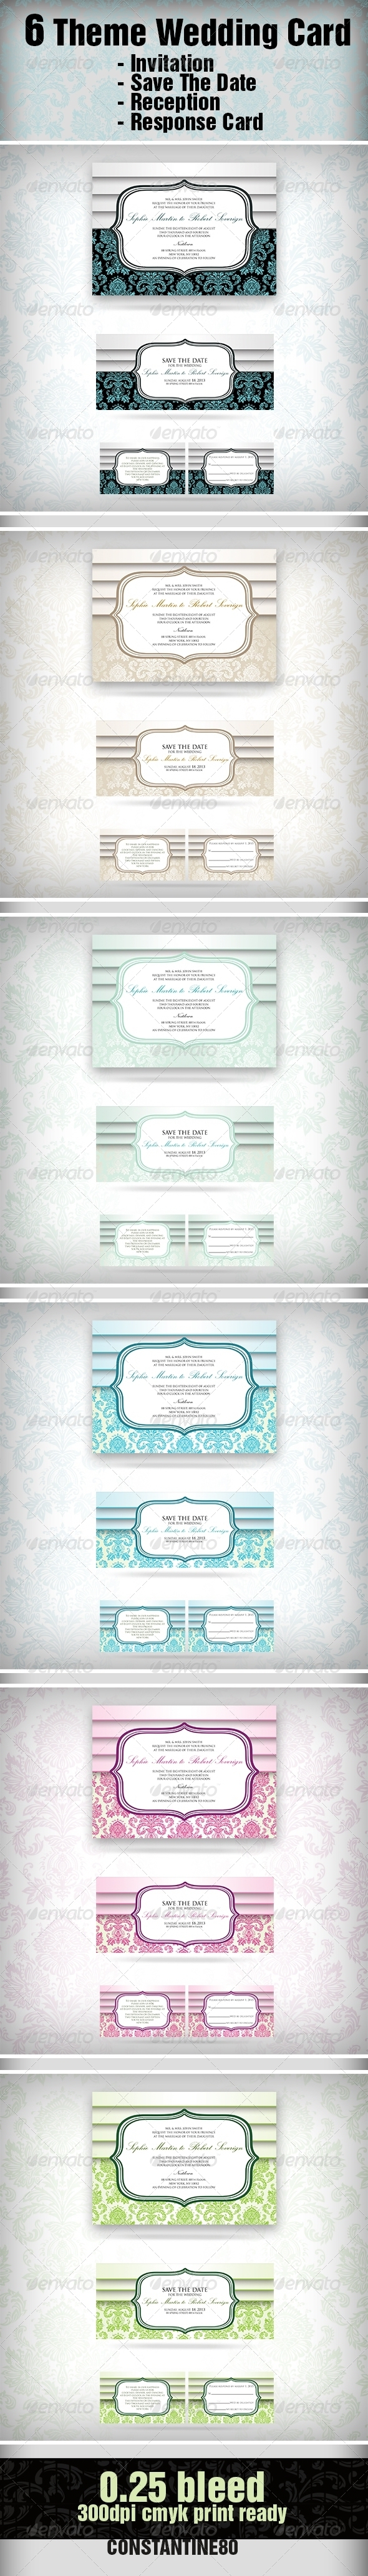 6 Theme Wedding Card - Weddings Cards &amp; Invites